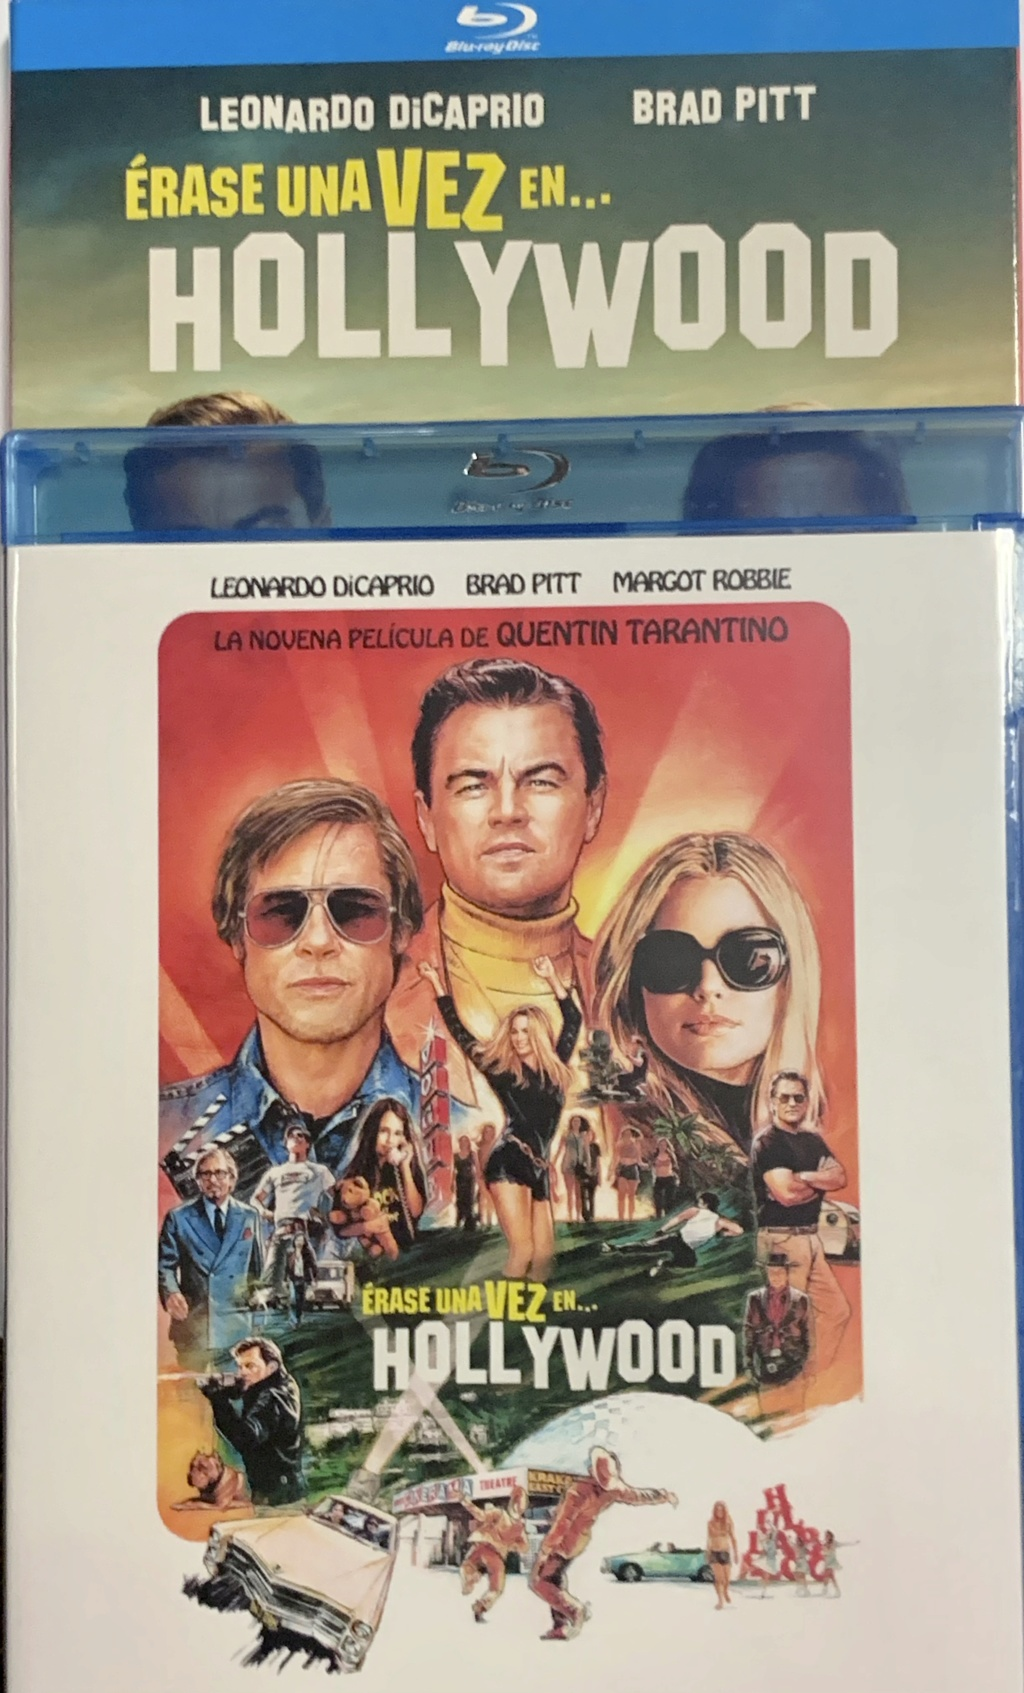 Quentin Tarantino: Once upon a time in Hollywood (2019) - Página 12 4d7fa710